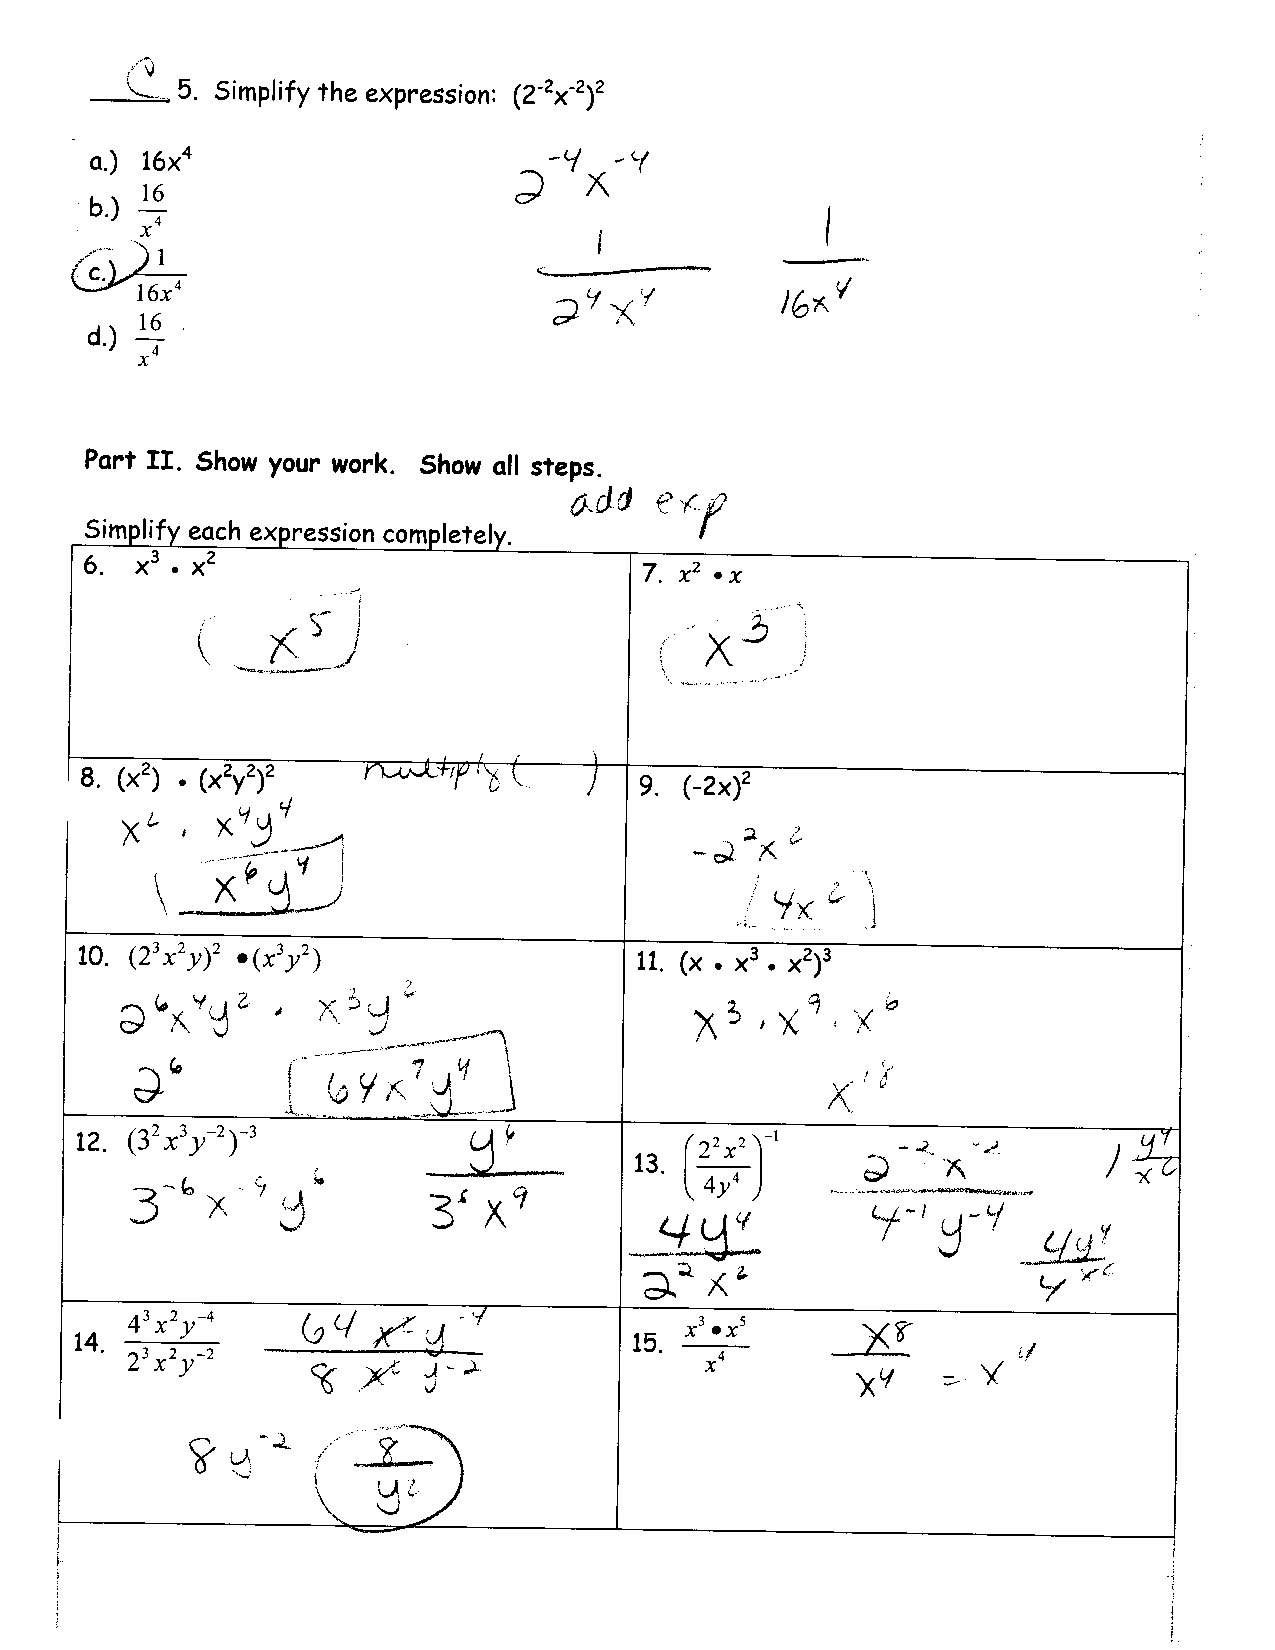 Unit 2 Worksheet 8 Factoring Polynomials Answer Key